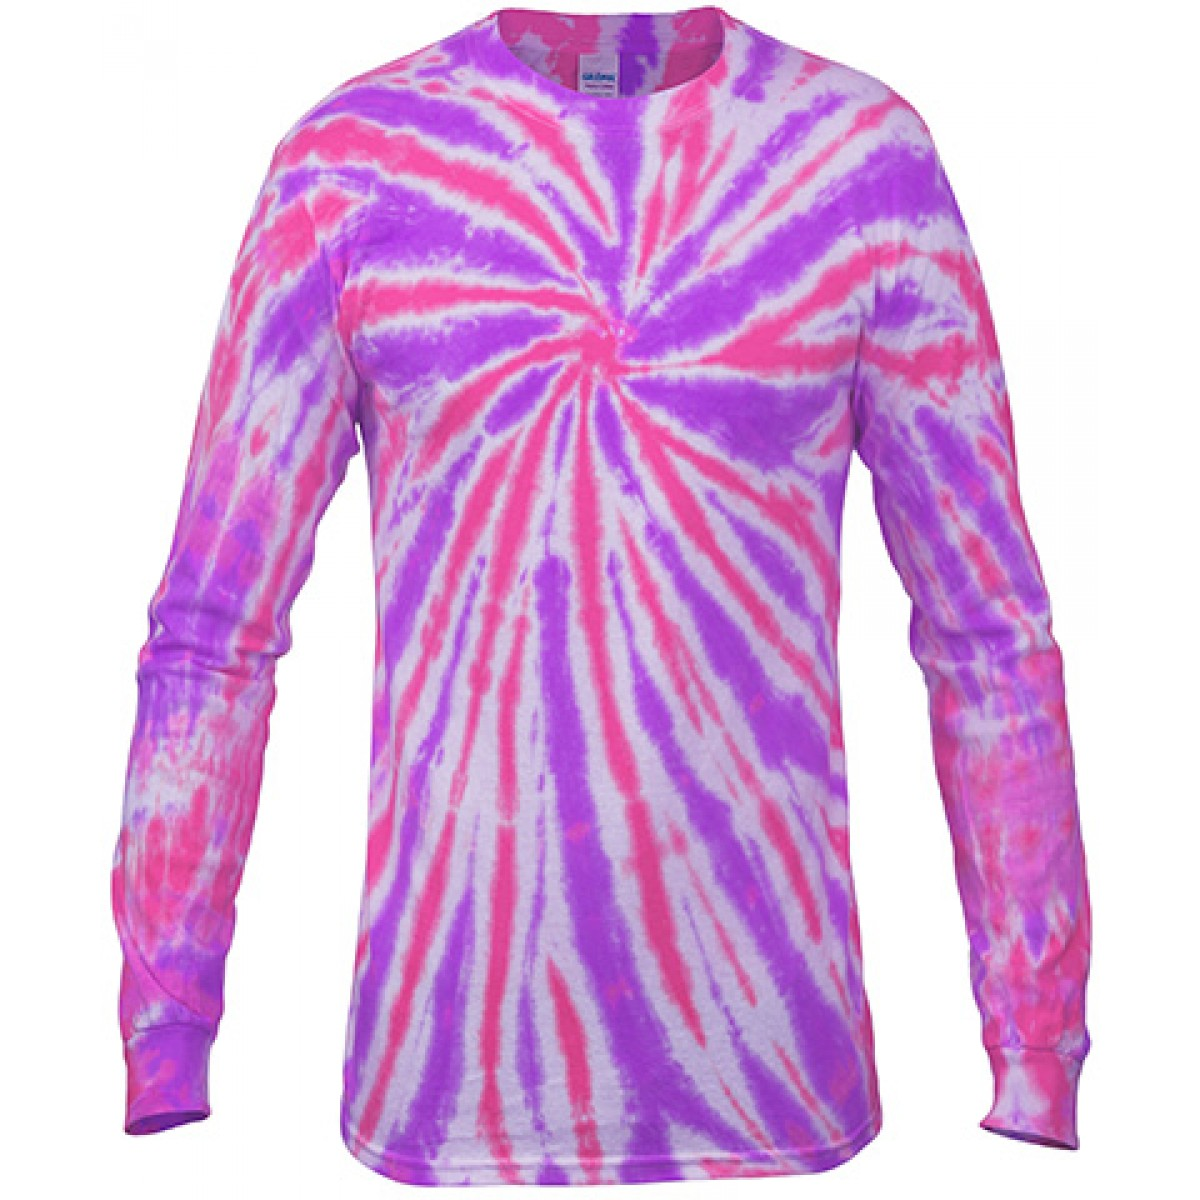 Multi Color Tie-Dye Long Sleeve Shirt -Purple-M